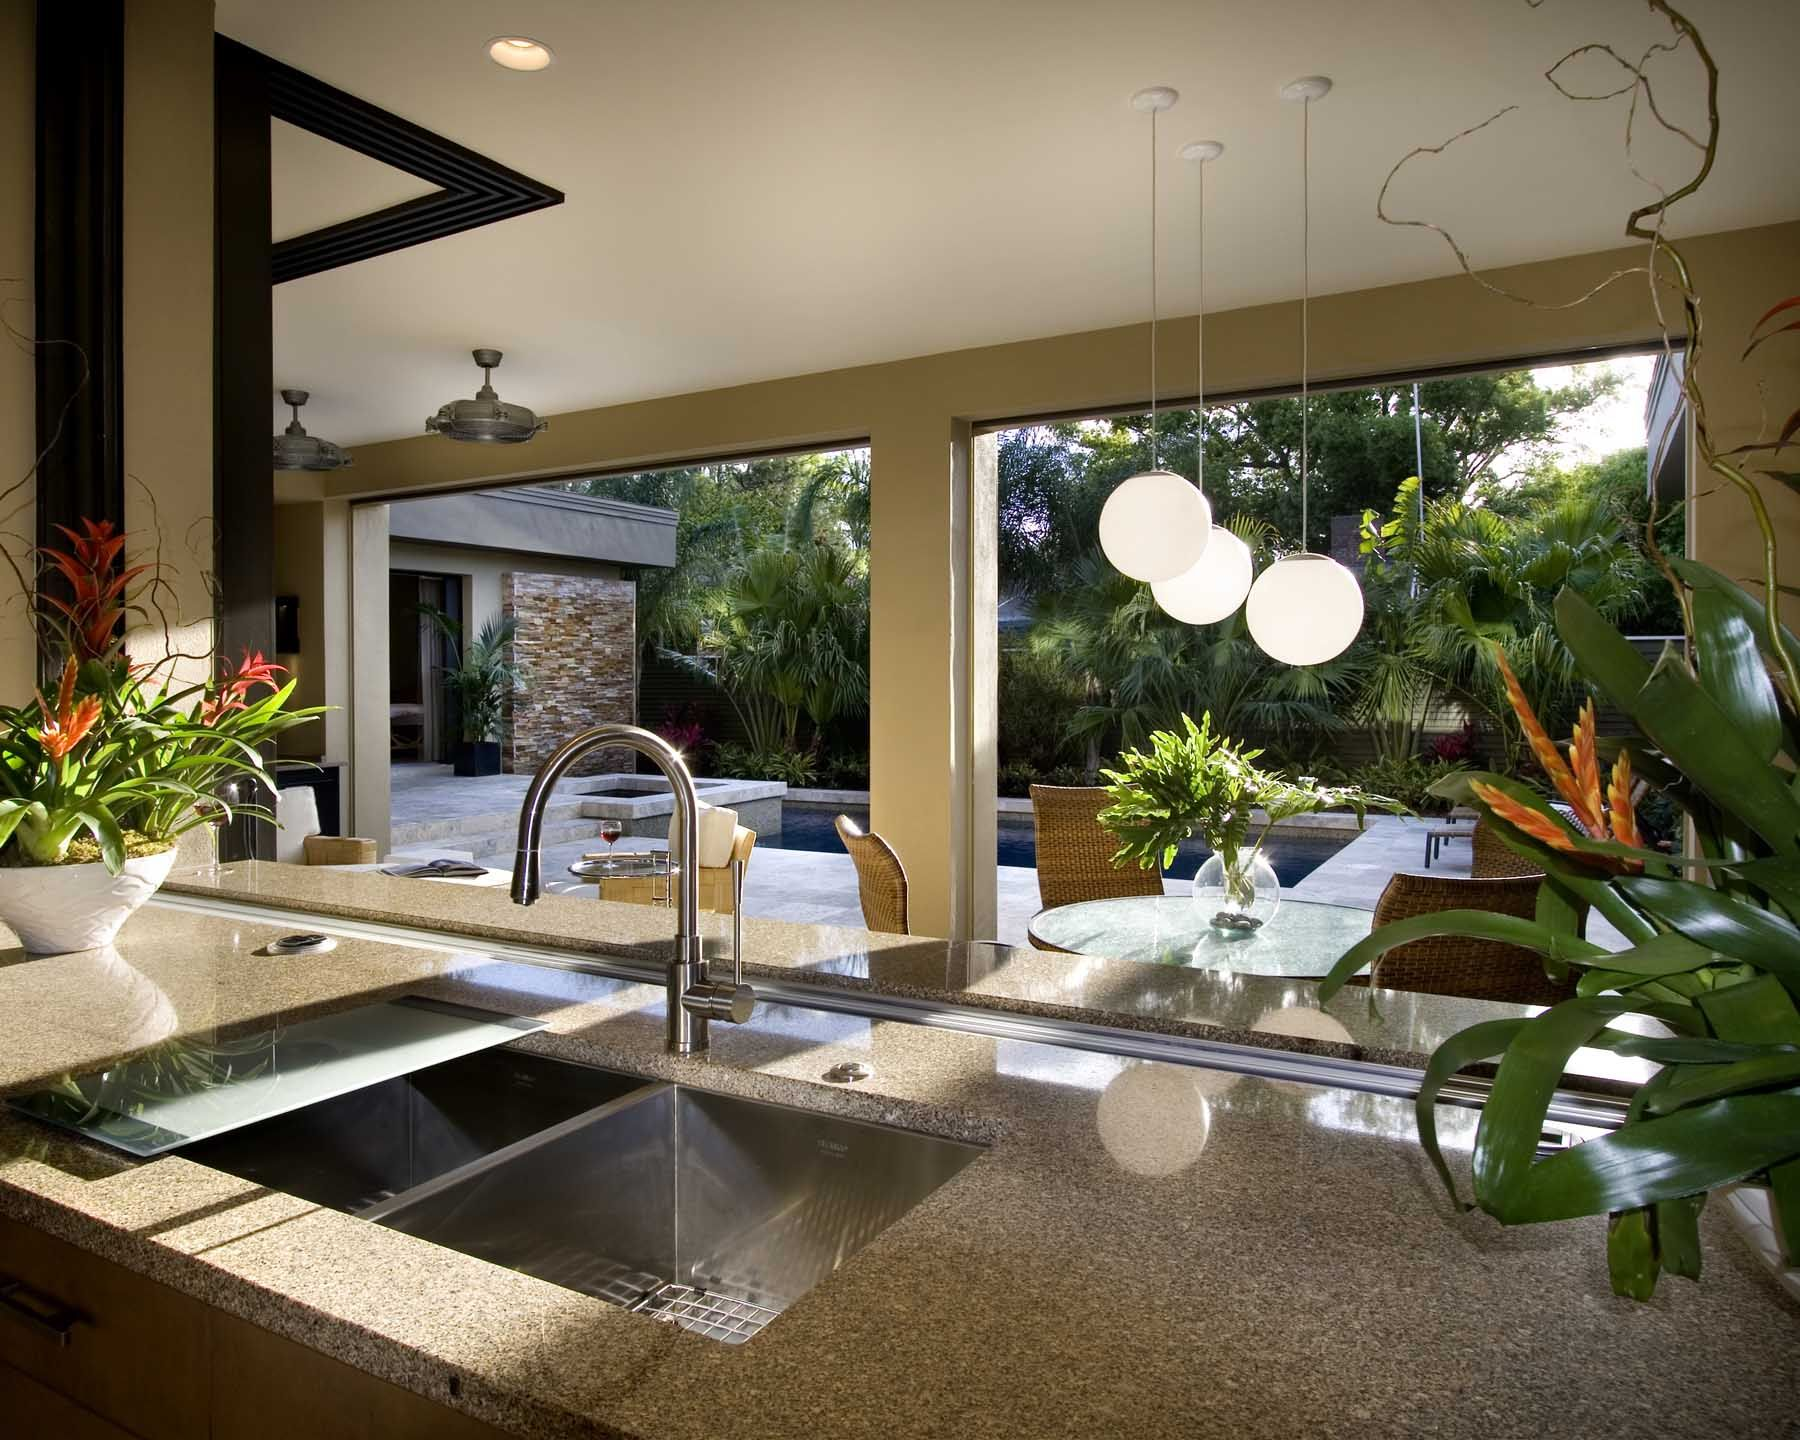 Indoor Outdoor Kitchen Kitchen With Pocketing Windows A Pass Through To Outdoor Living